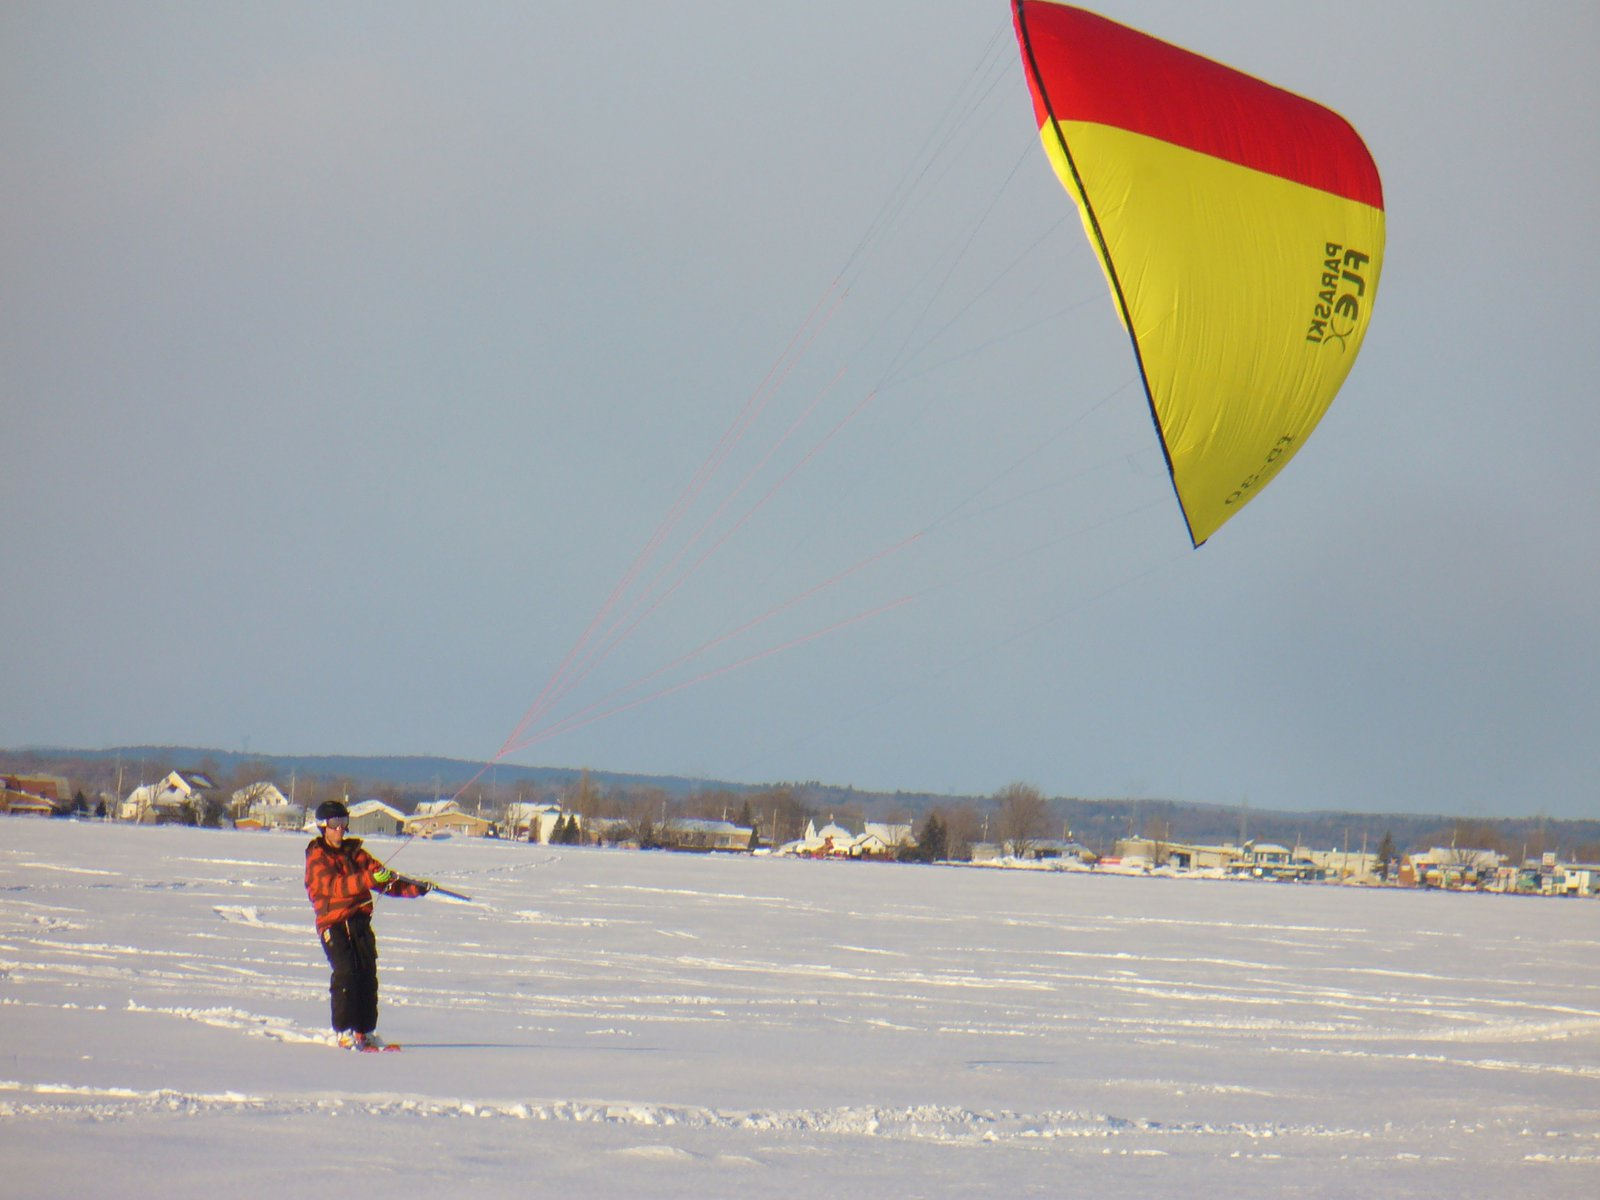 Kite skiing 3